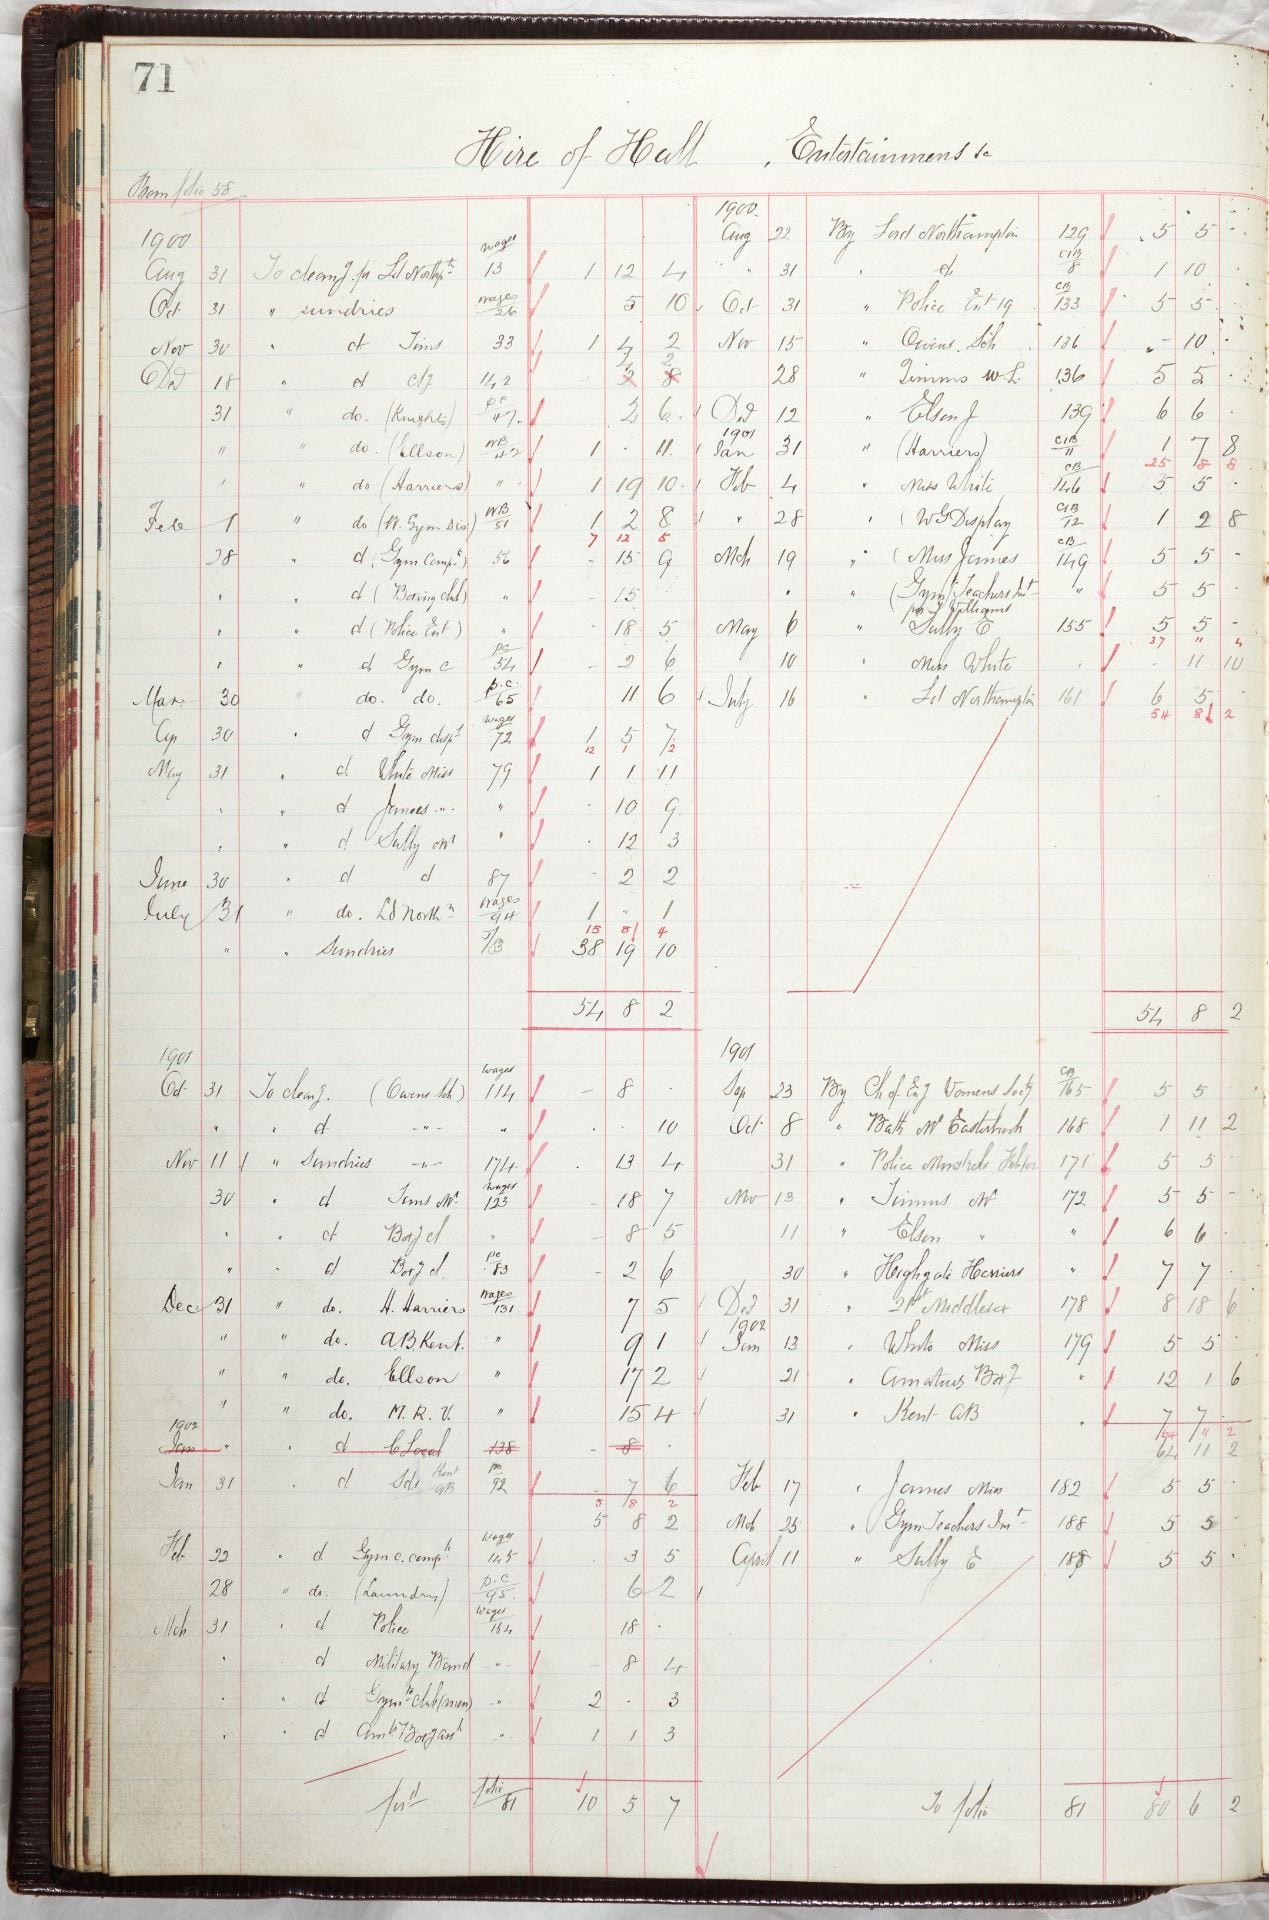 Financial ledger page 71 Hire of Hall - Entertainments. Costs arising from 1900.